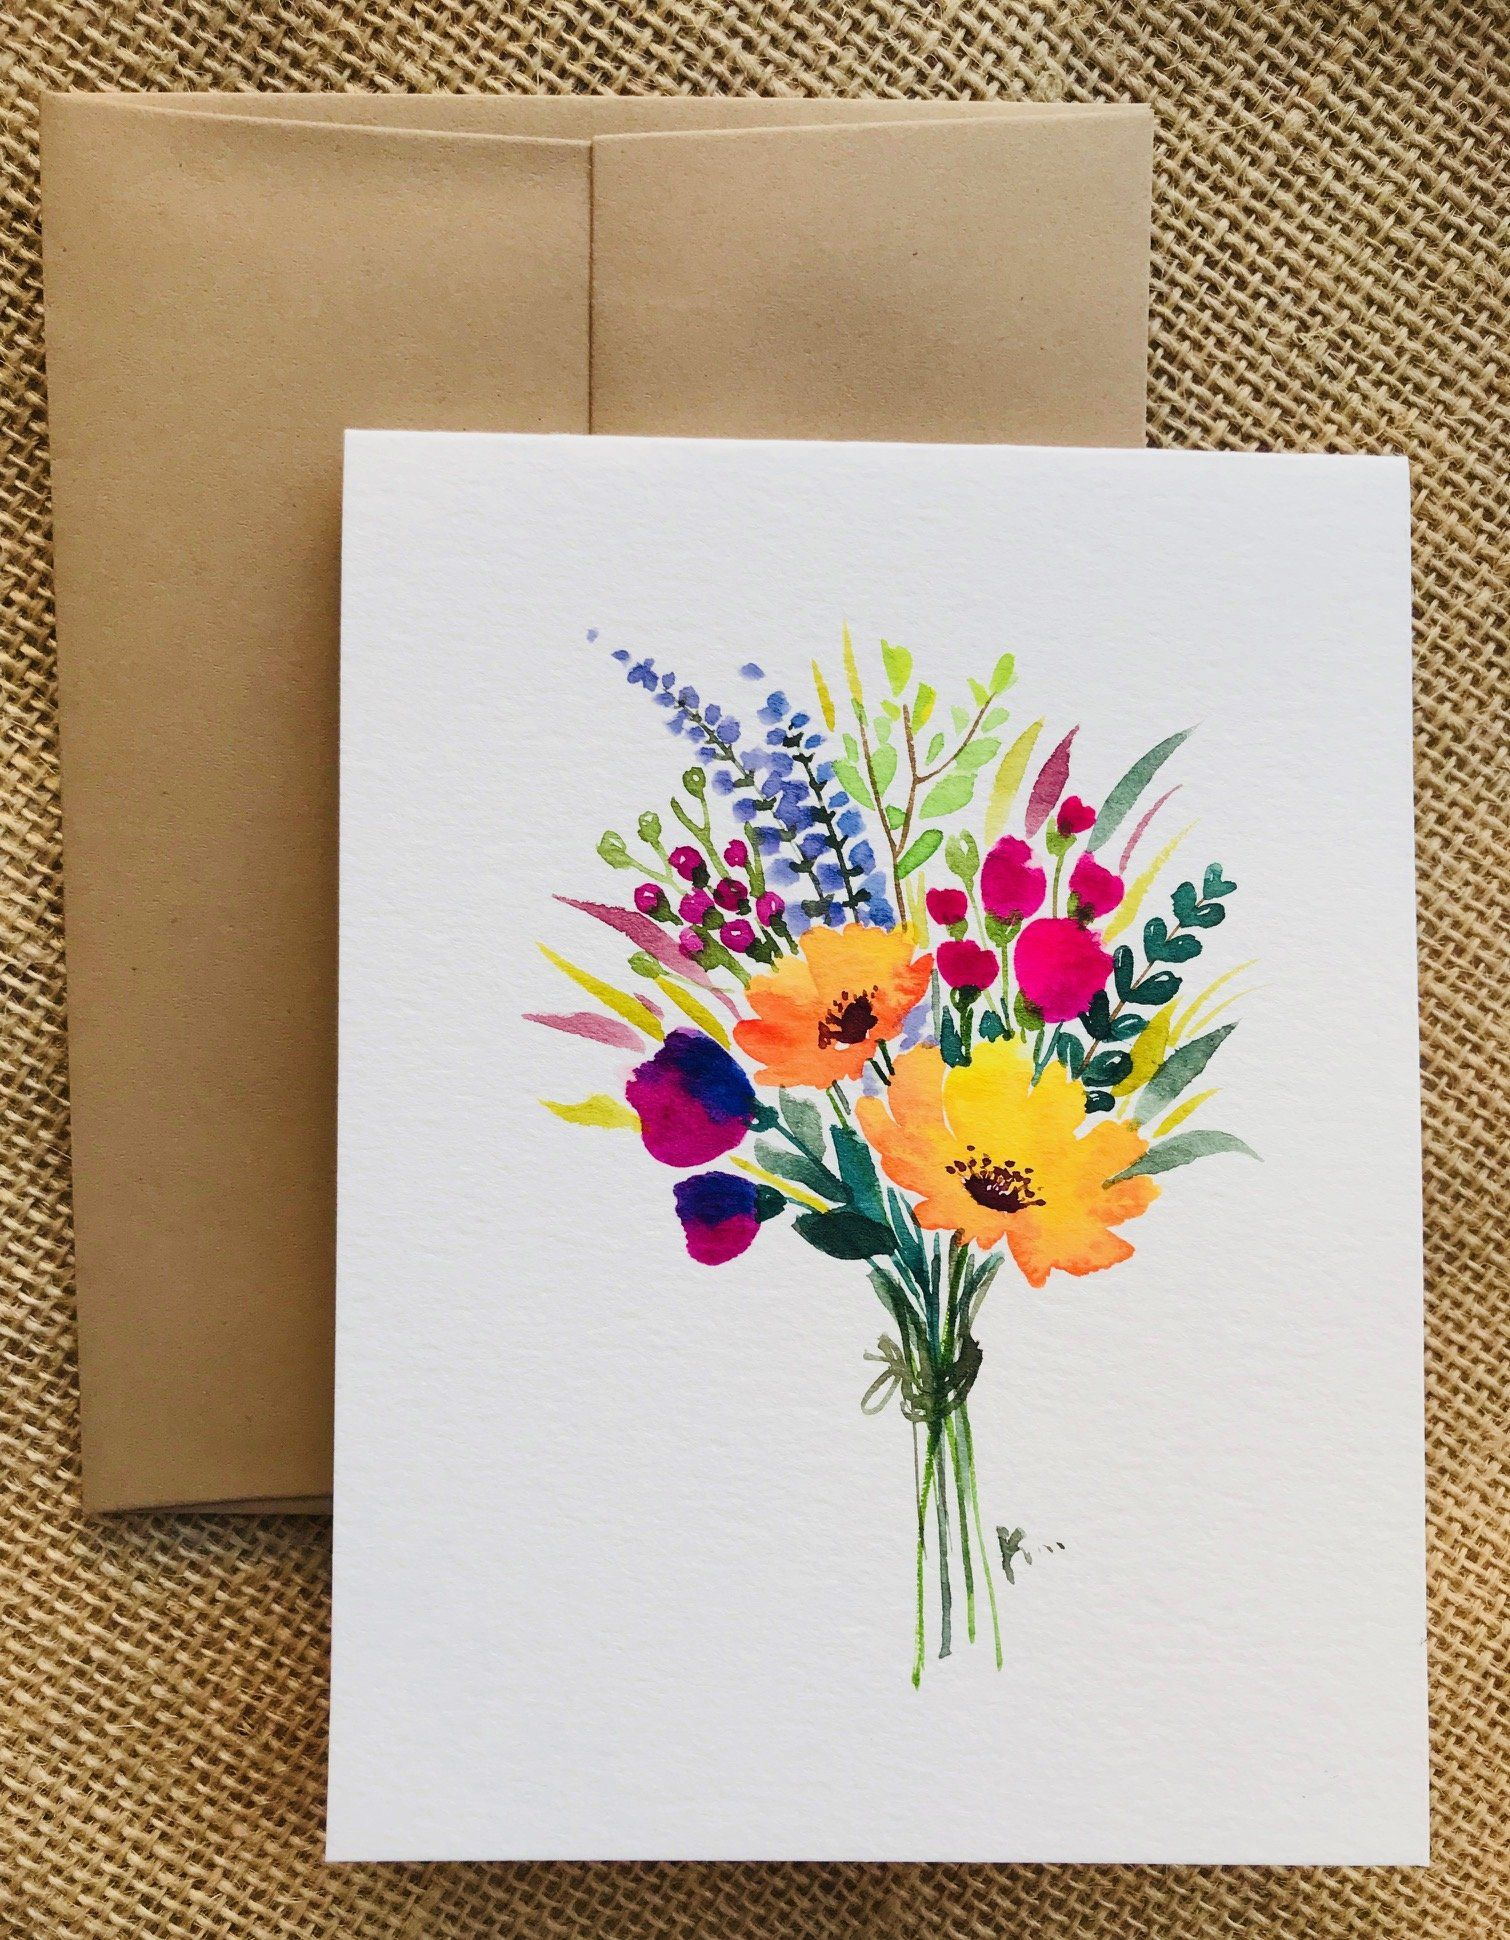 Hand Painted Greeting Cards With Flowers Watercolor Flowers